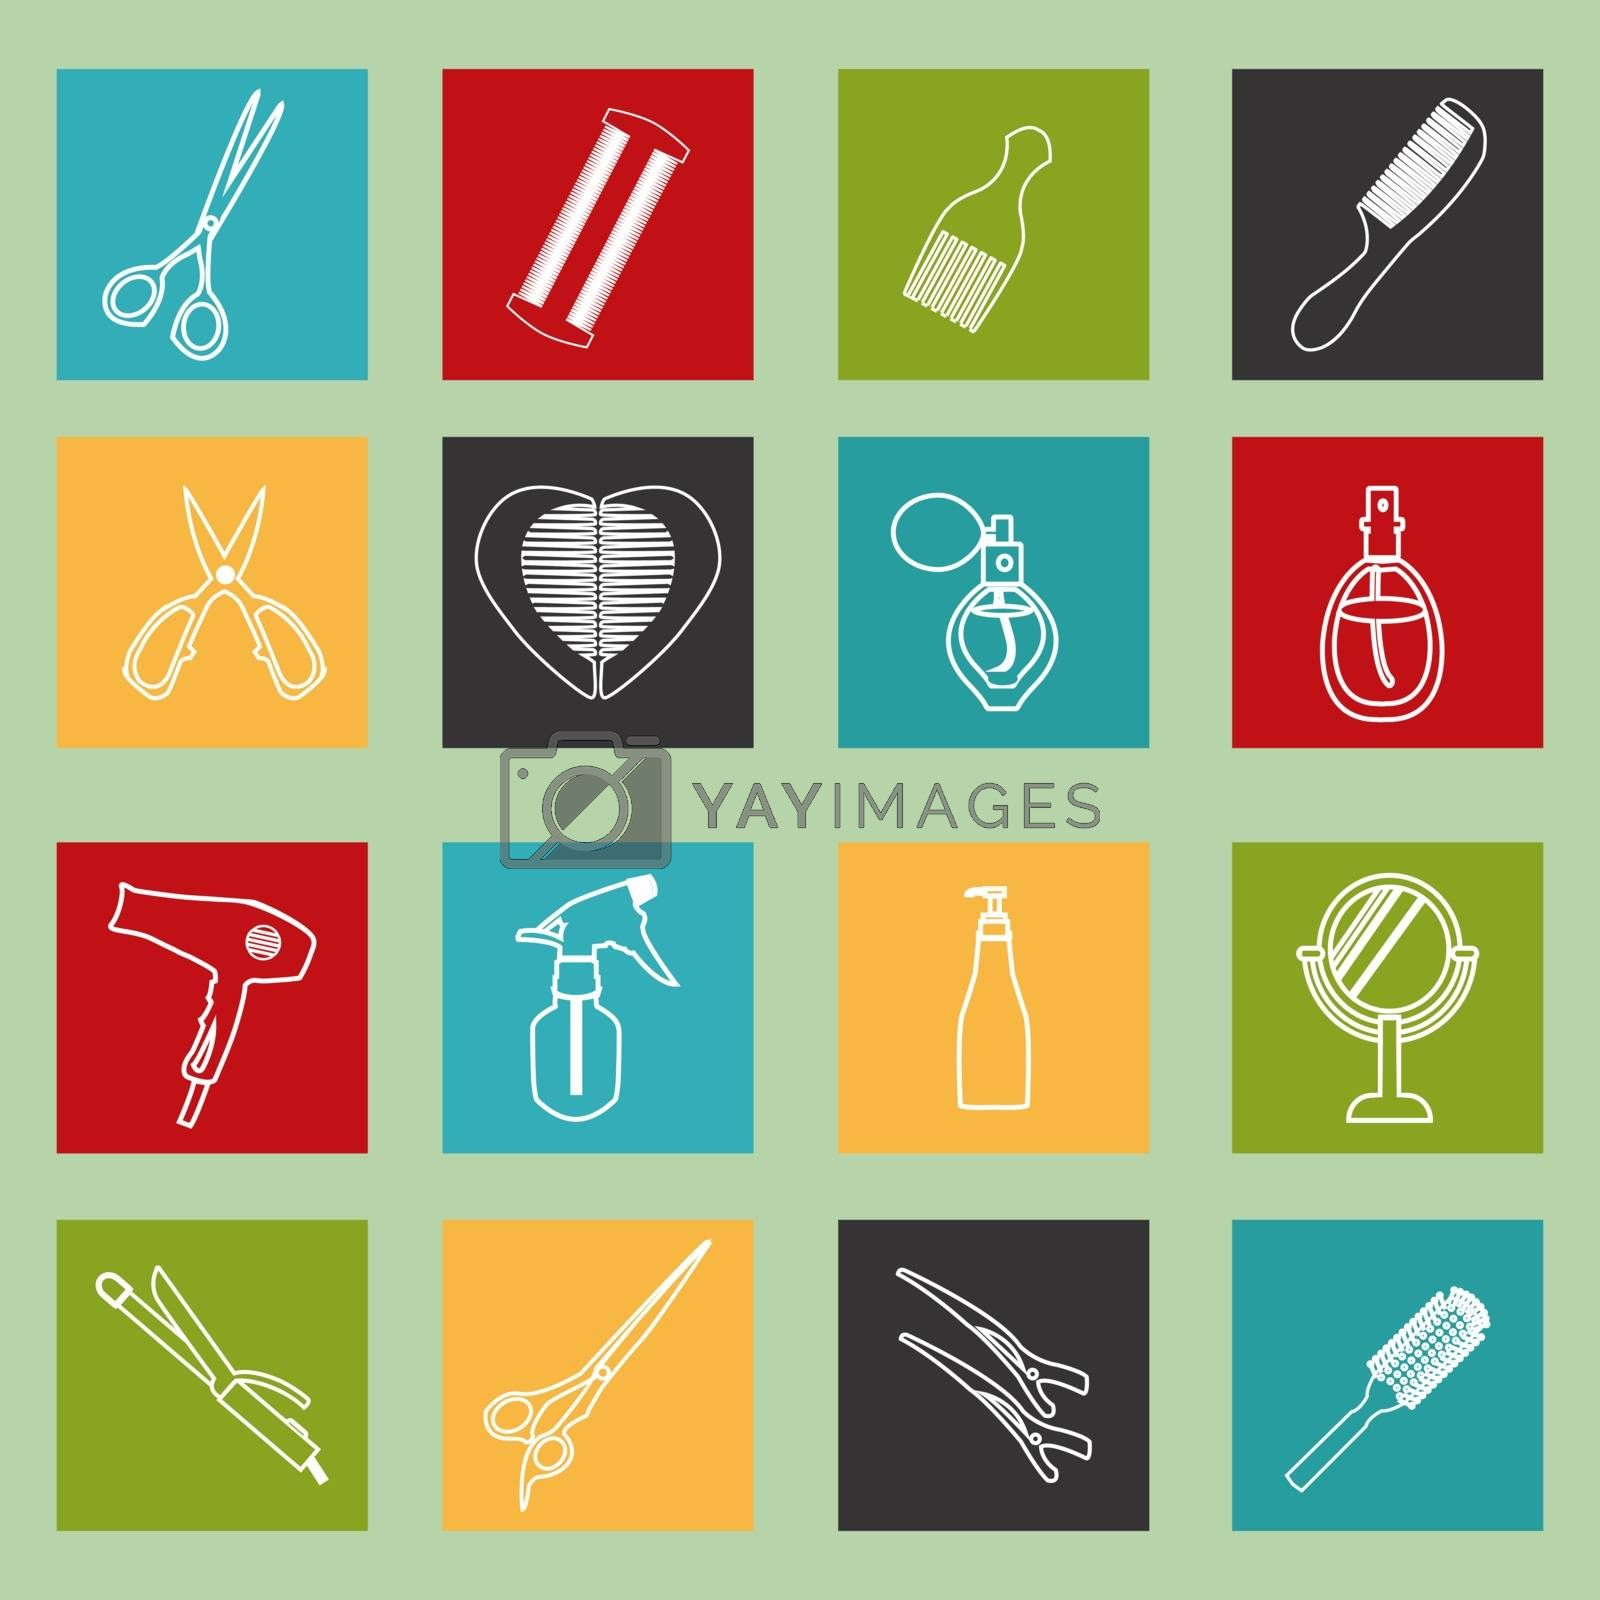 haircutting tool icons  outlined  Design ELements Barbershop objects